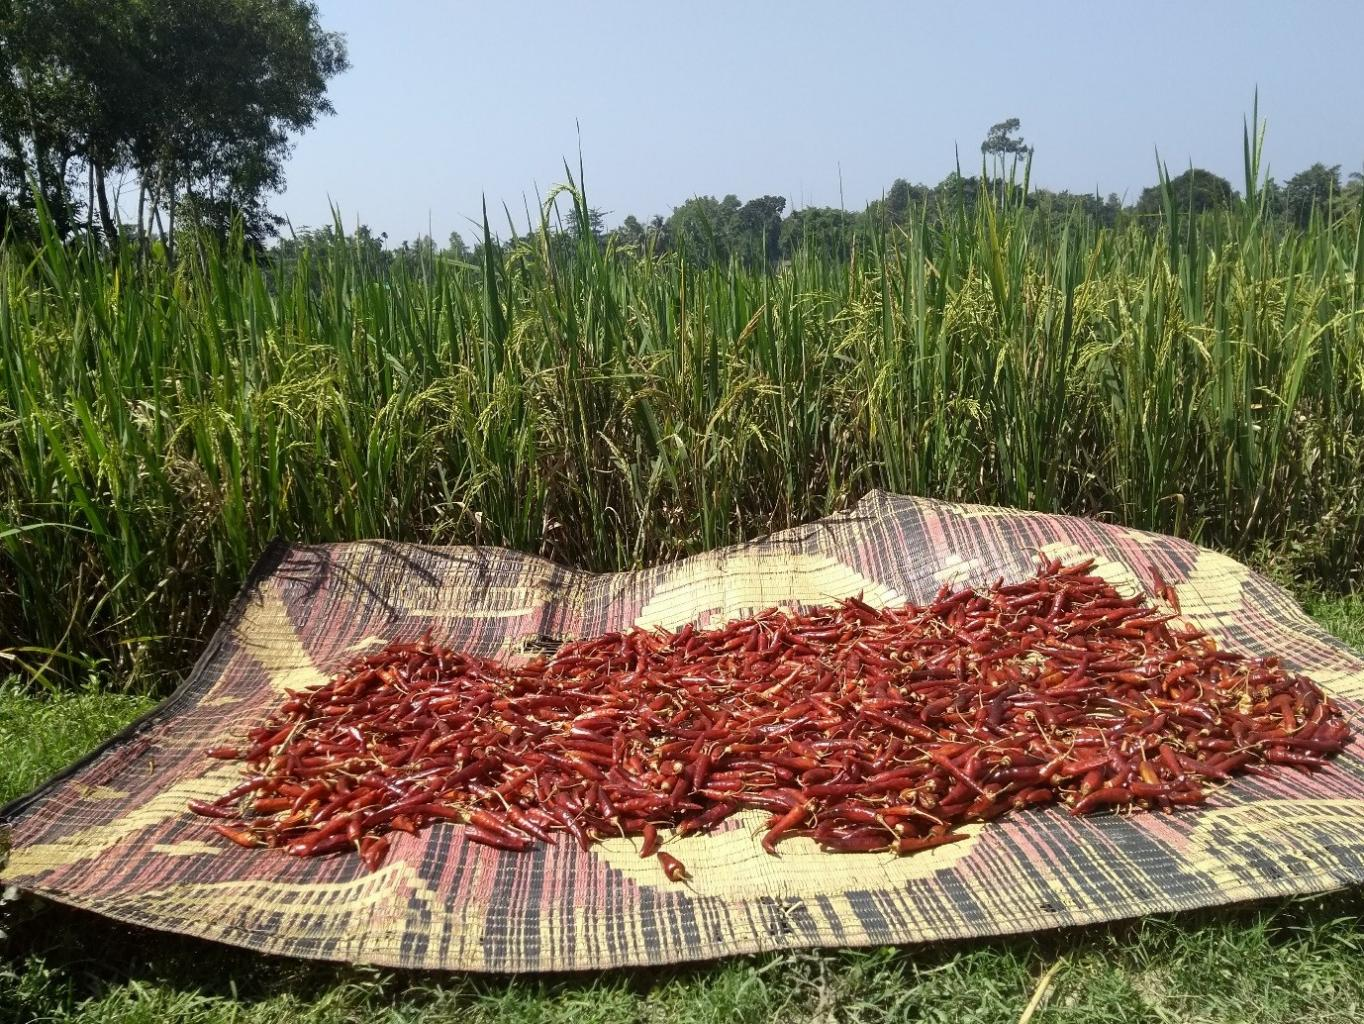 Chillies drying near the MSF staff house in Cox's Bazar